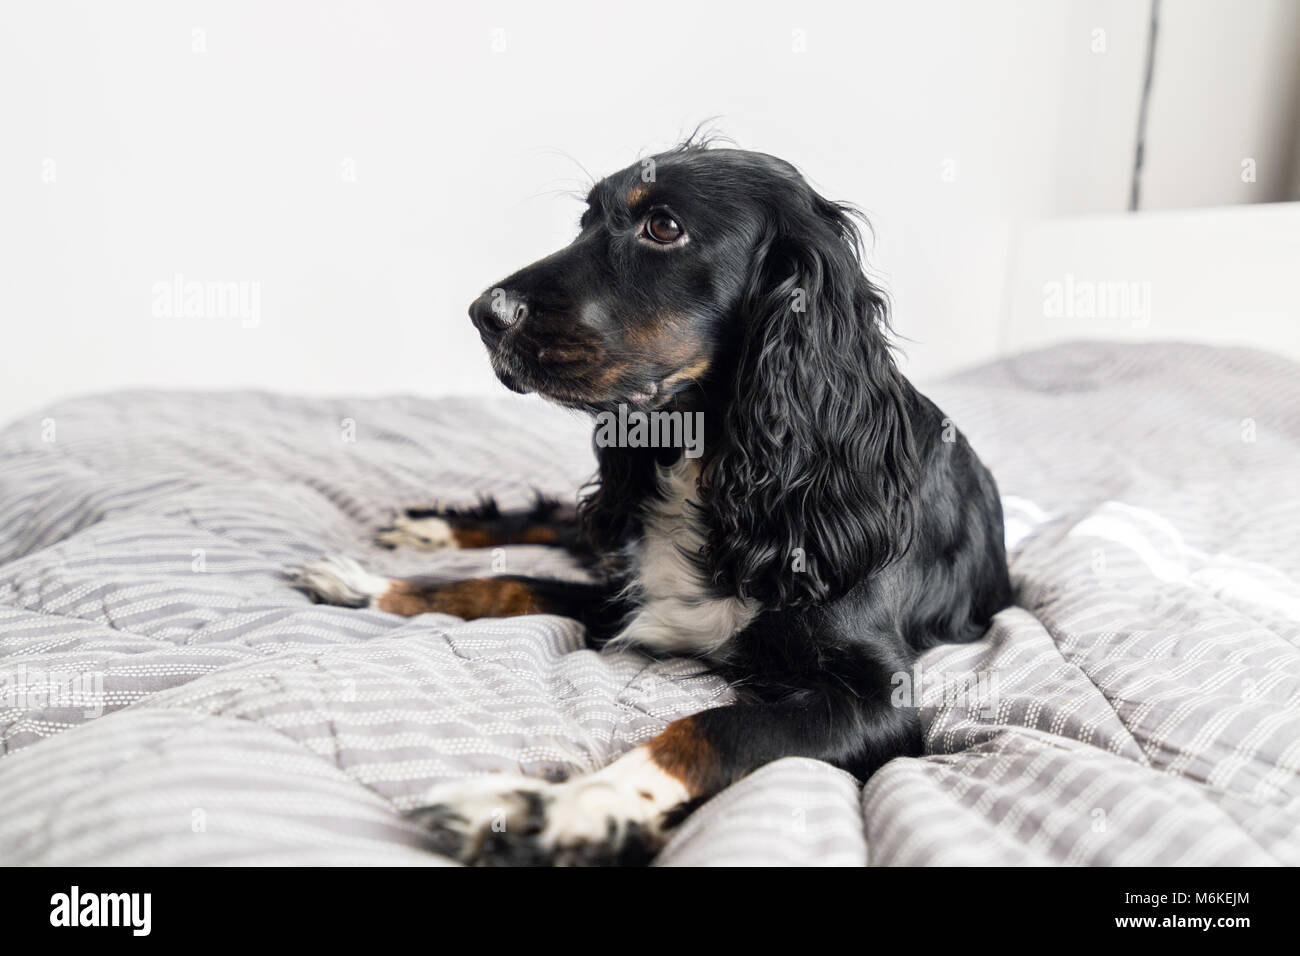 Black Spaniel dog on gray textile decorative coat and pillows for a scandinavian style bed in House or Hotel. Pets - Stock Image